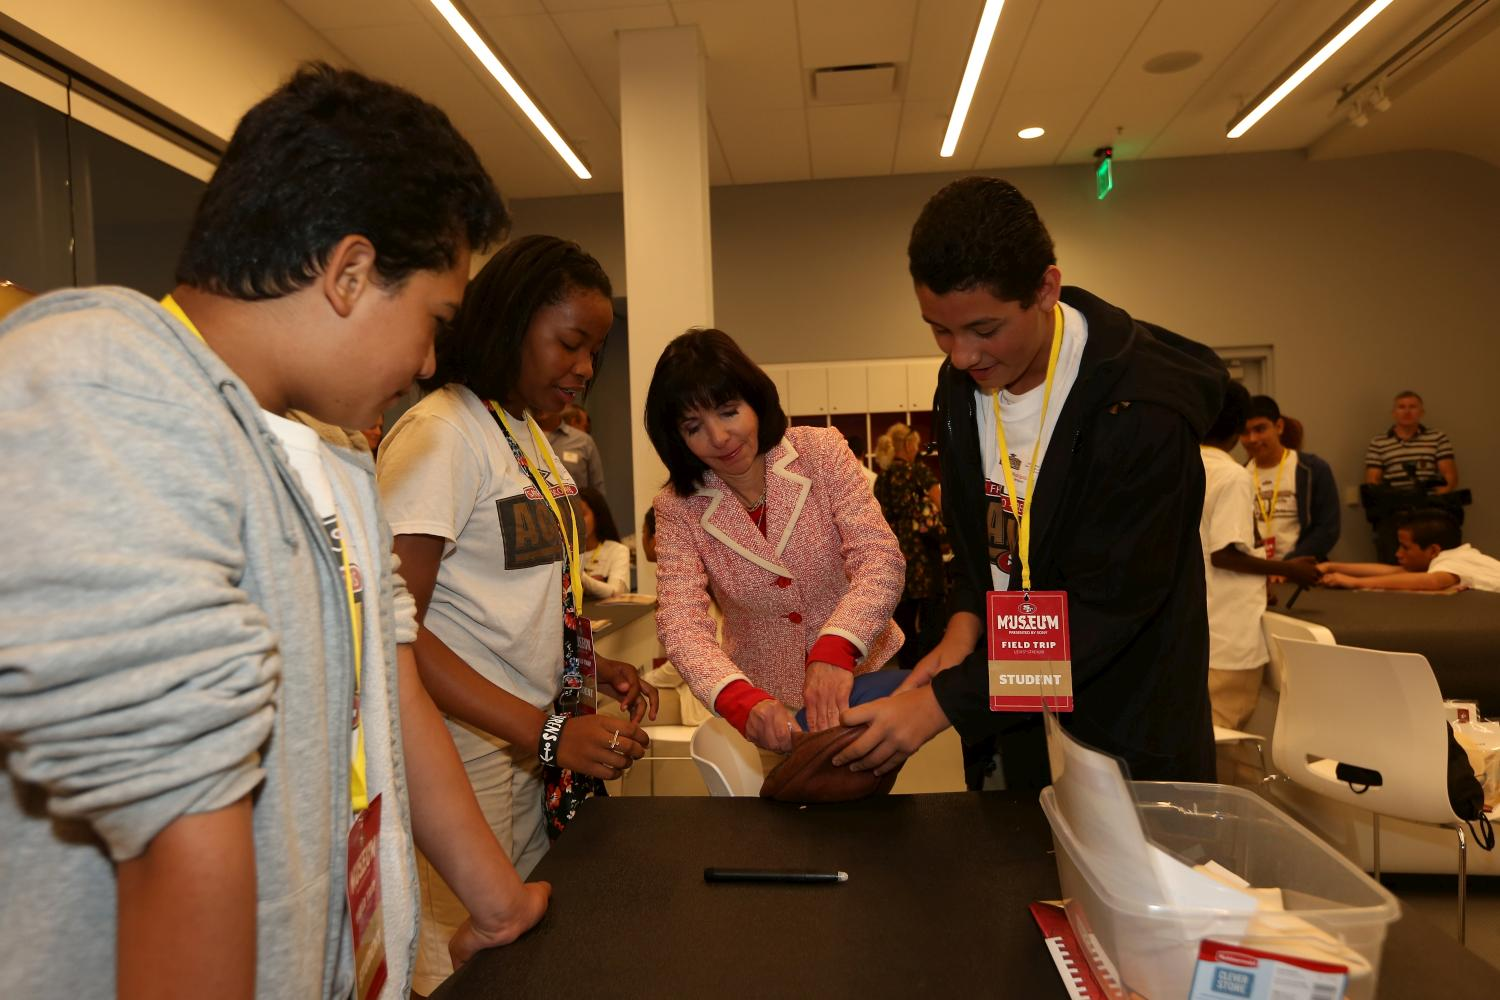 Denise DeBartolo York helps students assemble a football at the 49ers STEM Leadership Institute at Levi's Stadium